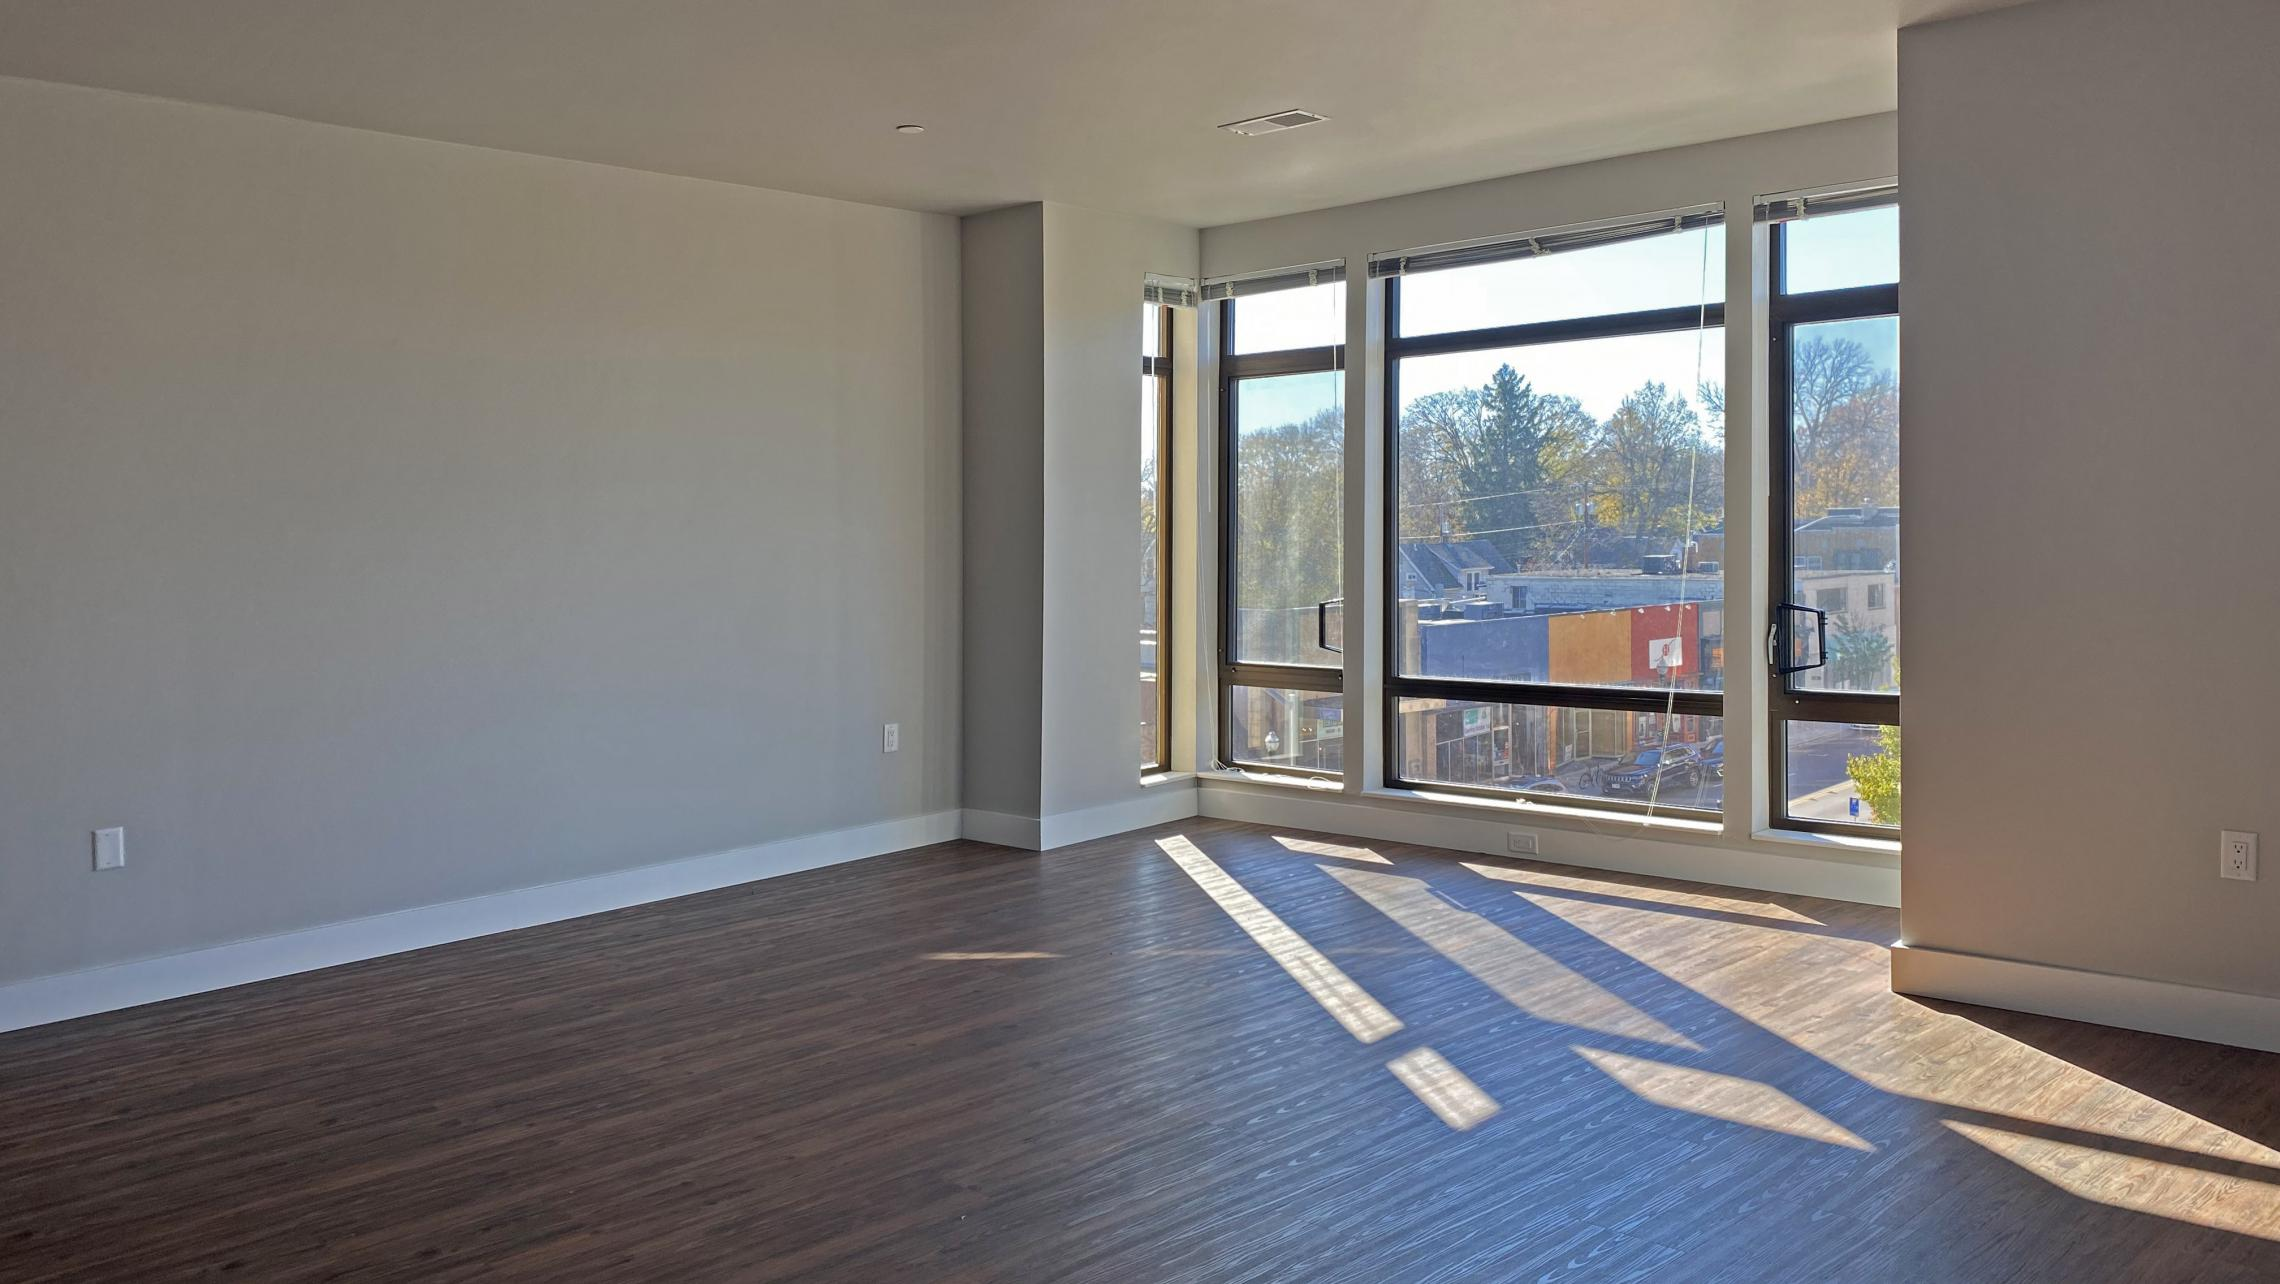 1722-Monroe-Apartments-419-Three-Bedroom-Modern-Upscale-Design-Windows-Natural-Light-Gym-Terrace-Living-Luxury-Lounge-Madison-Living-Space-Entertaining-View